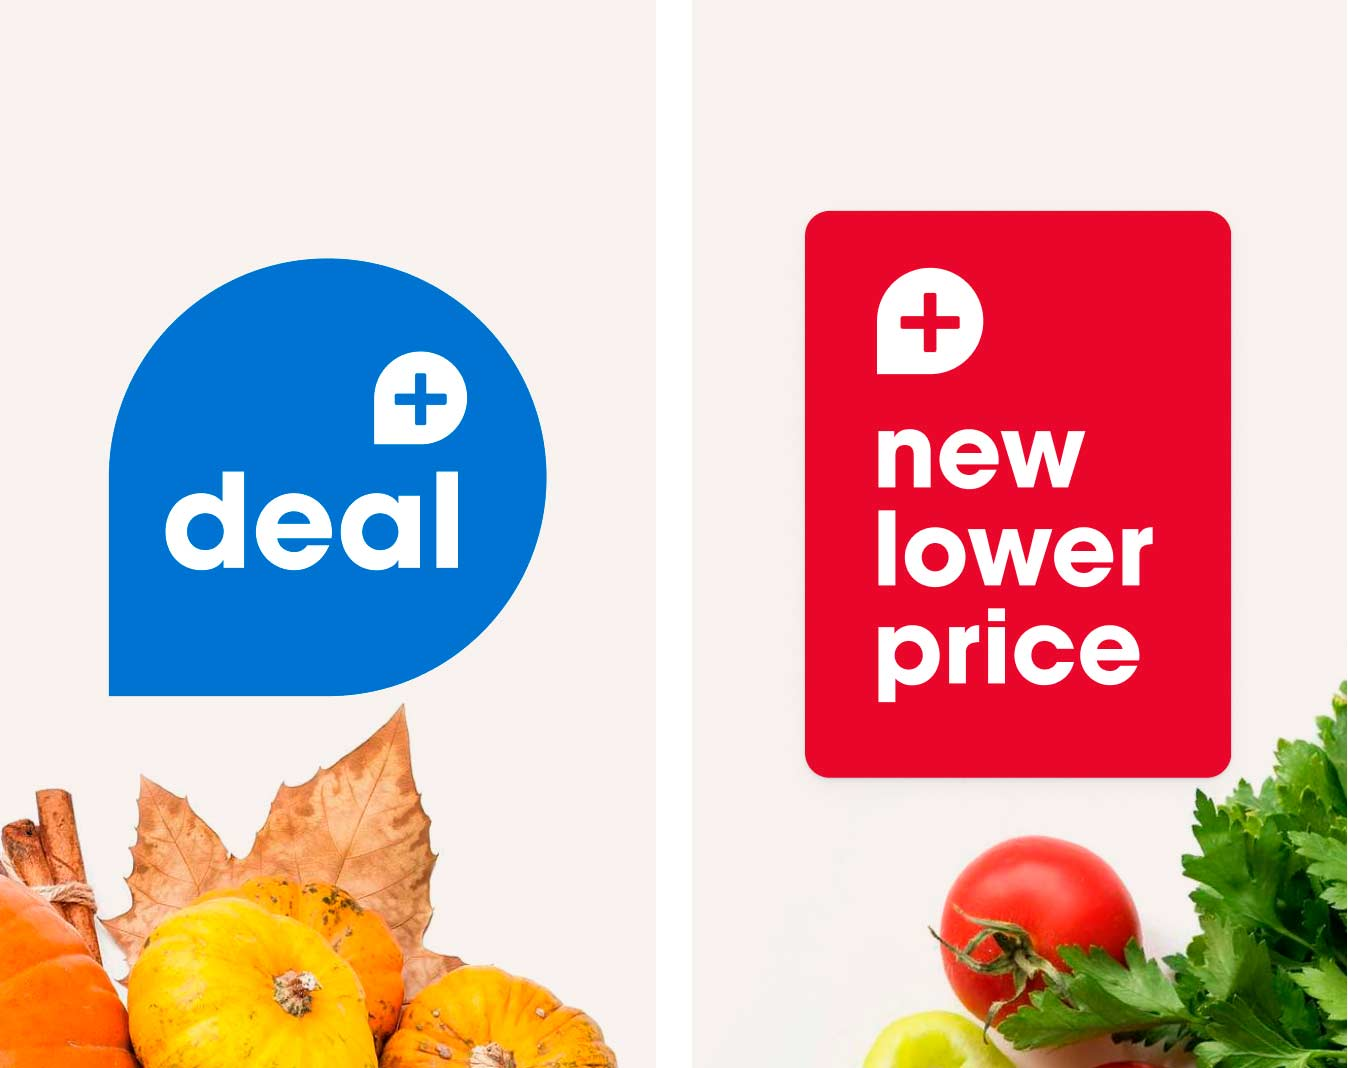 Signages for deal and new lower price